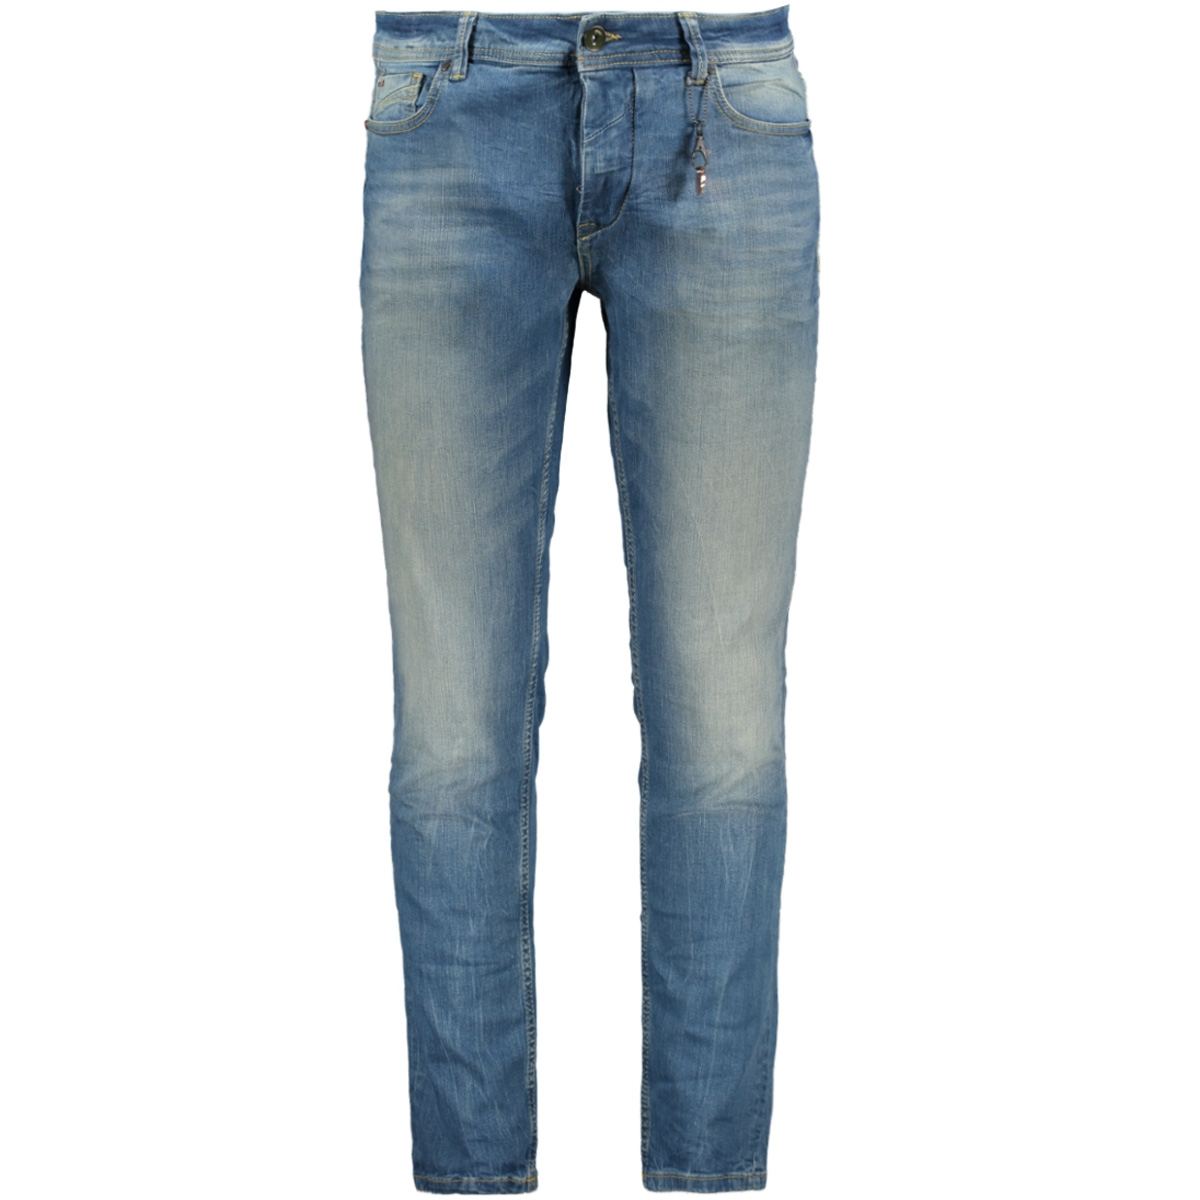 n711d05 no-excess jeans mid blue